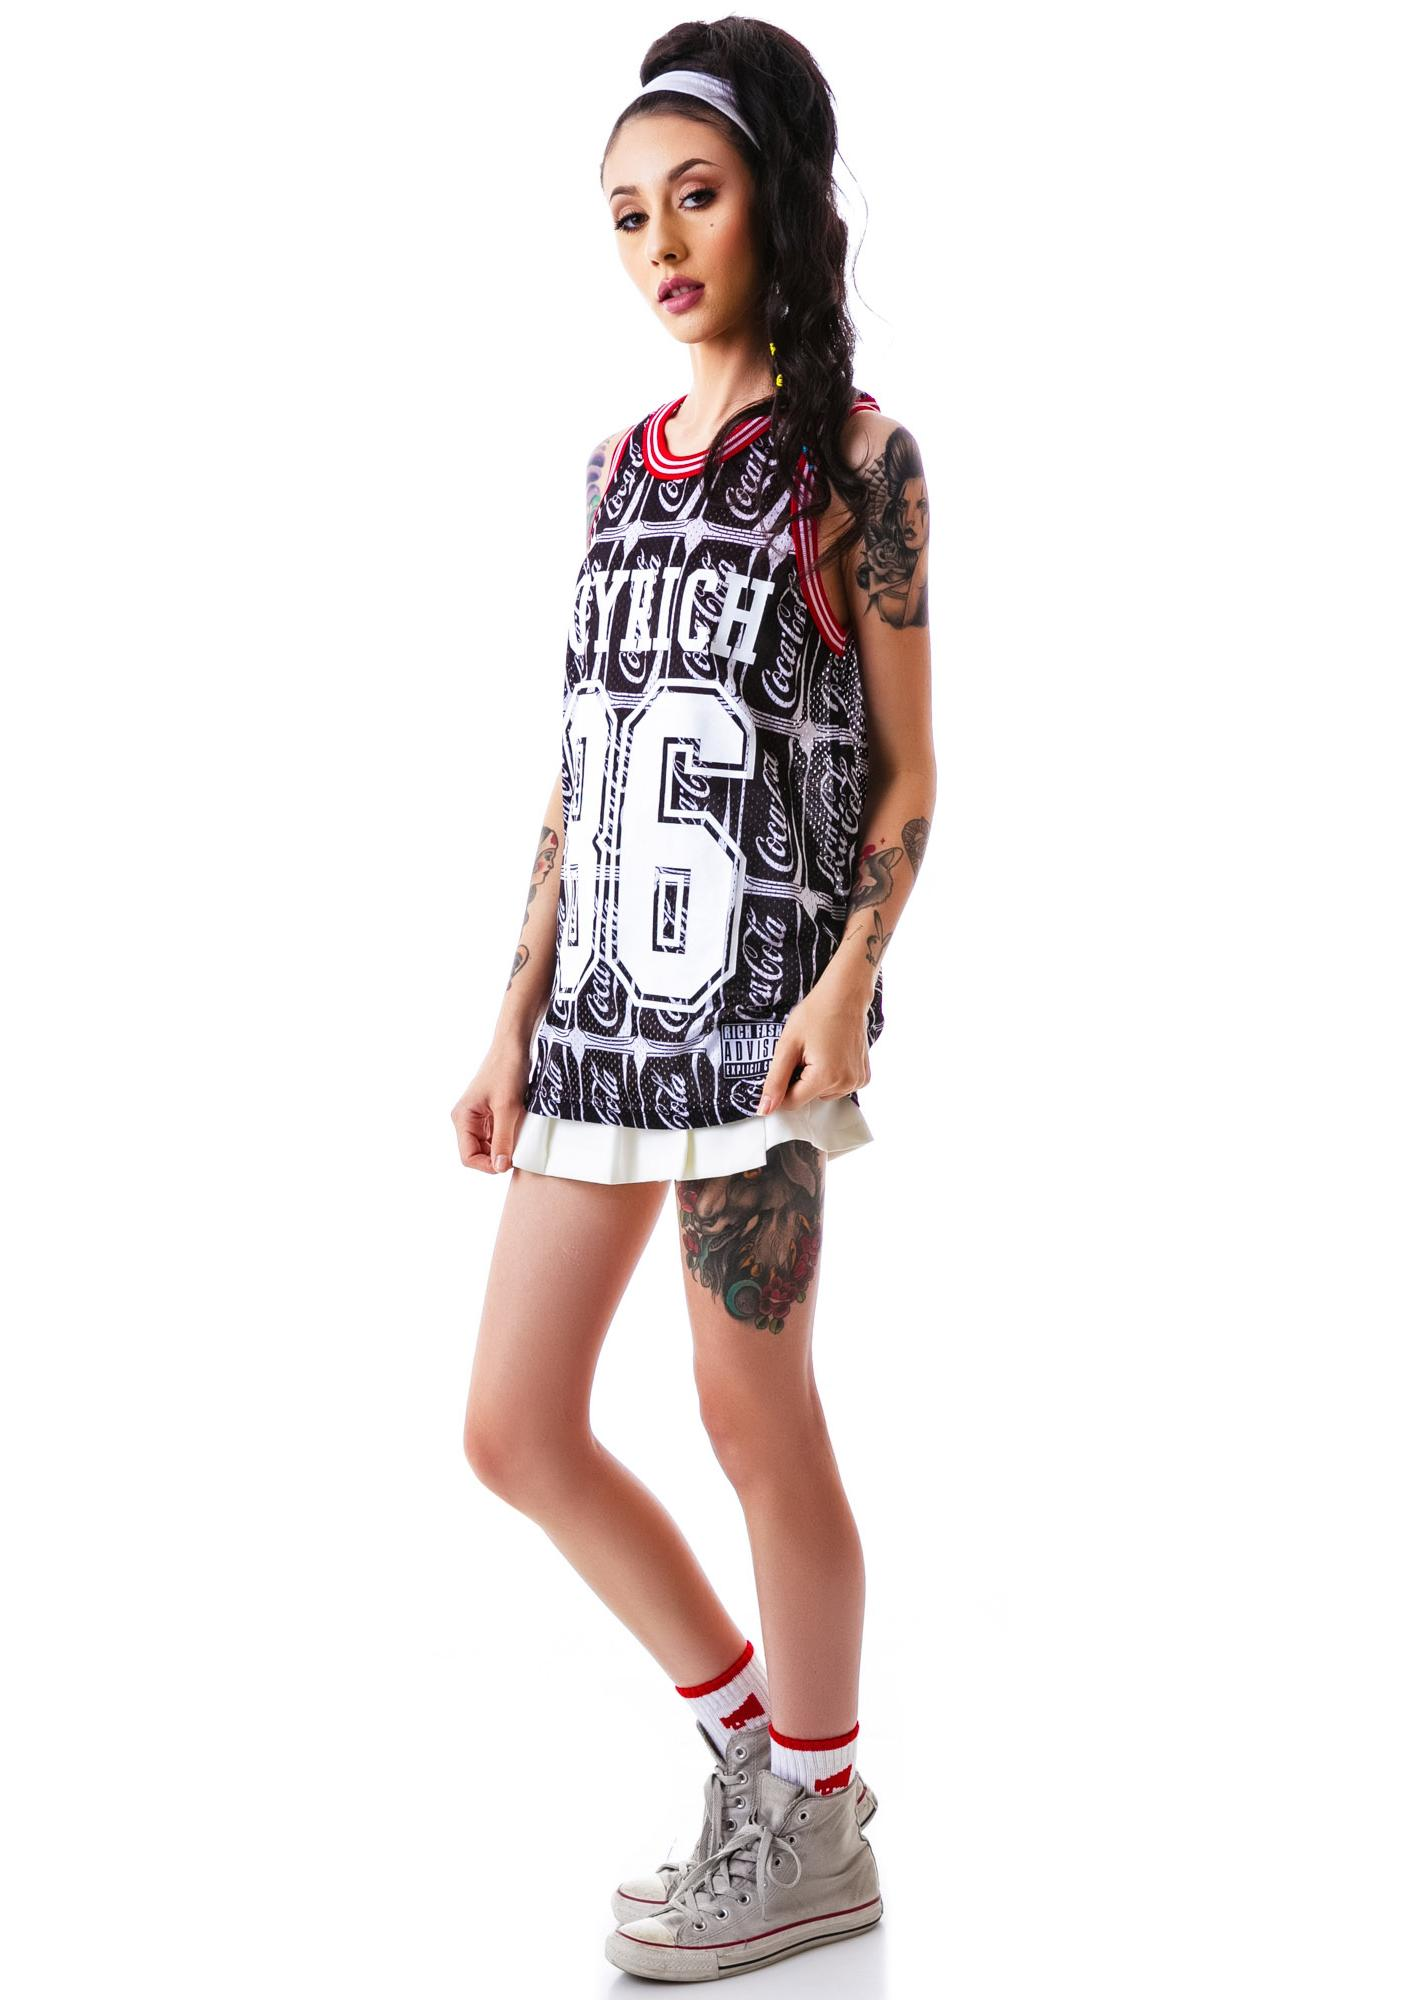 Joyrich Coco-Cola Number Mesh Tank